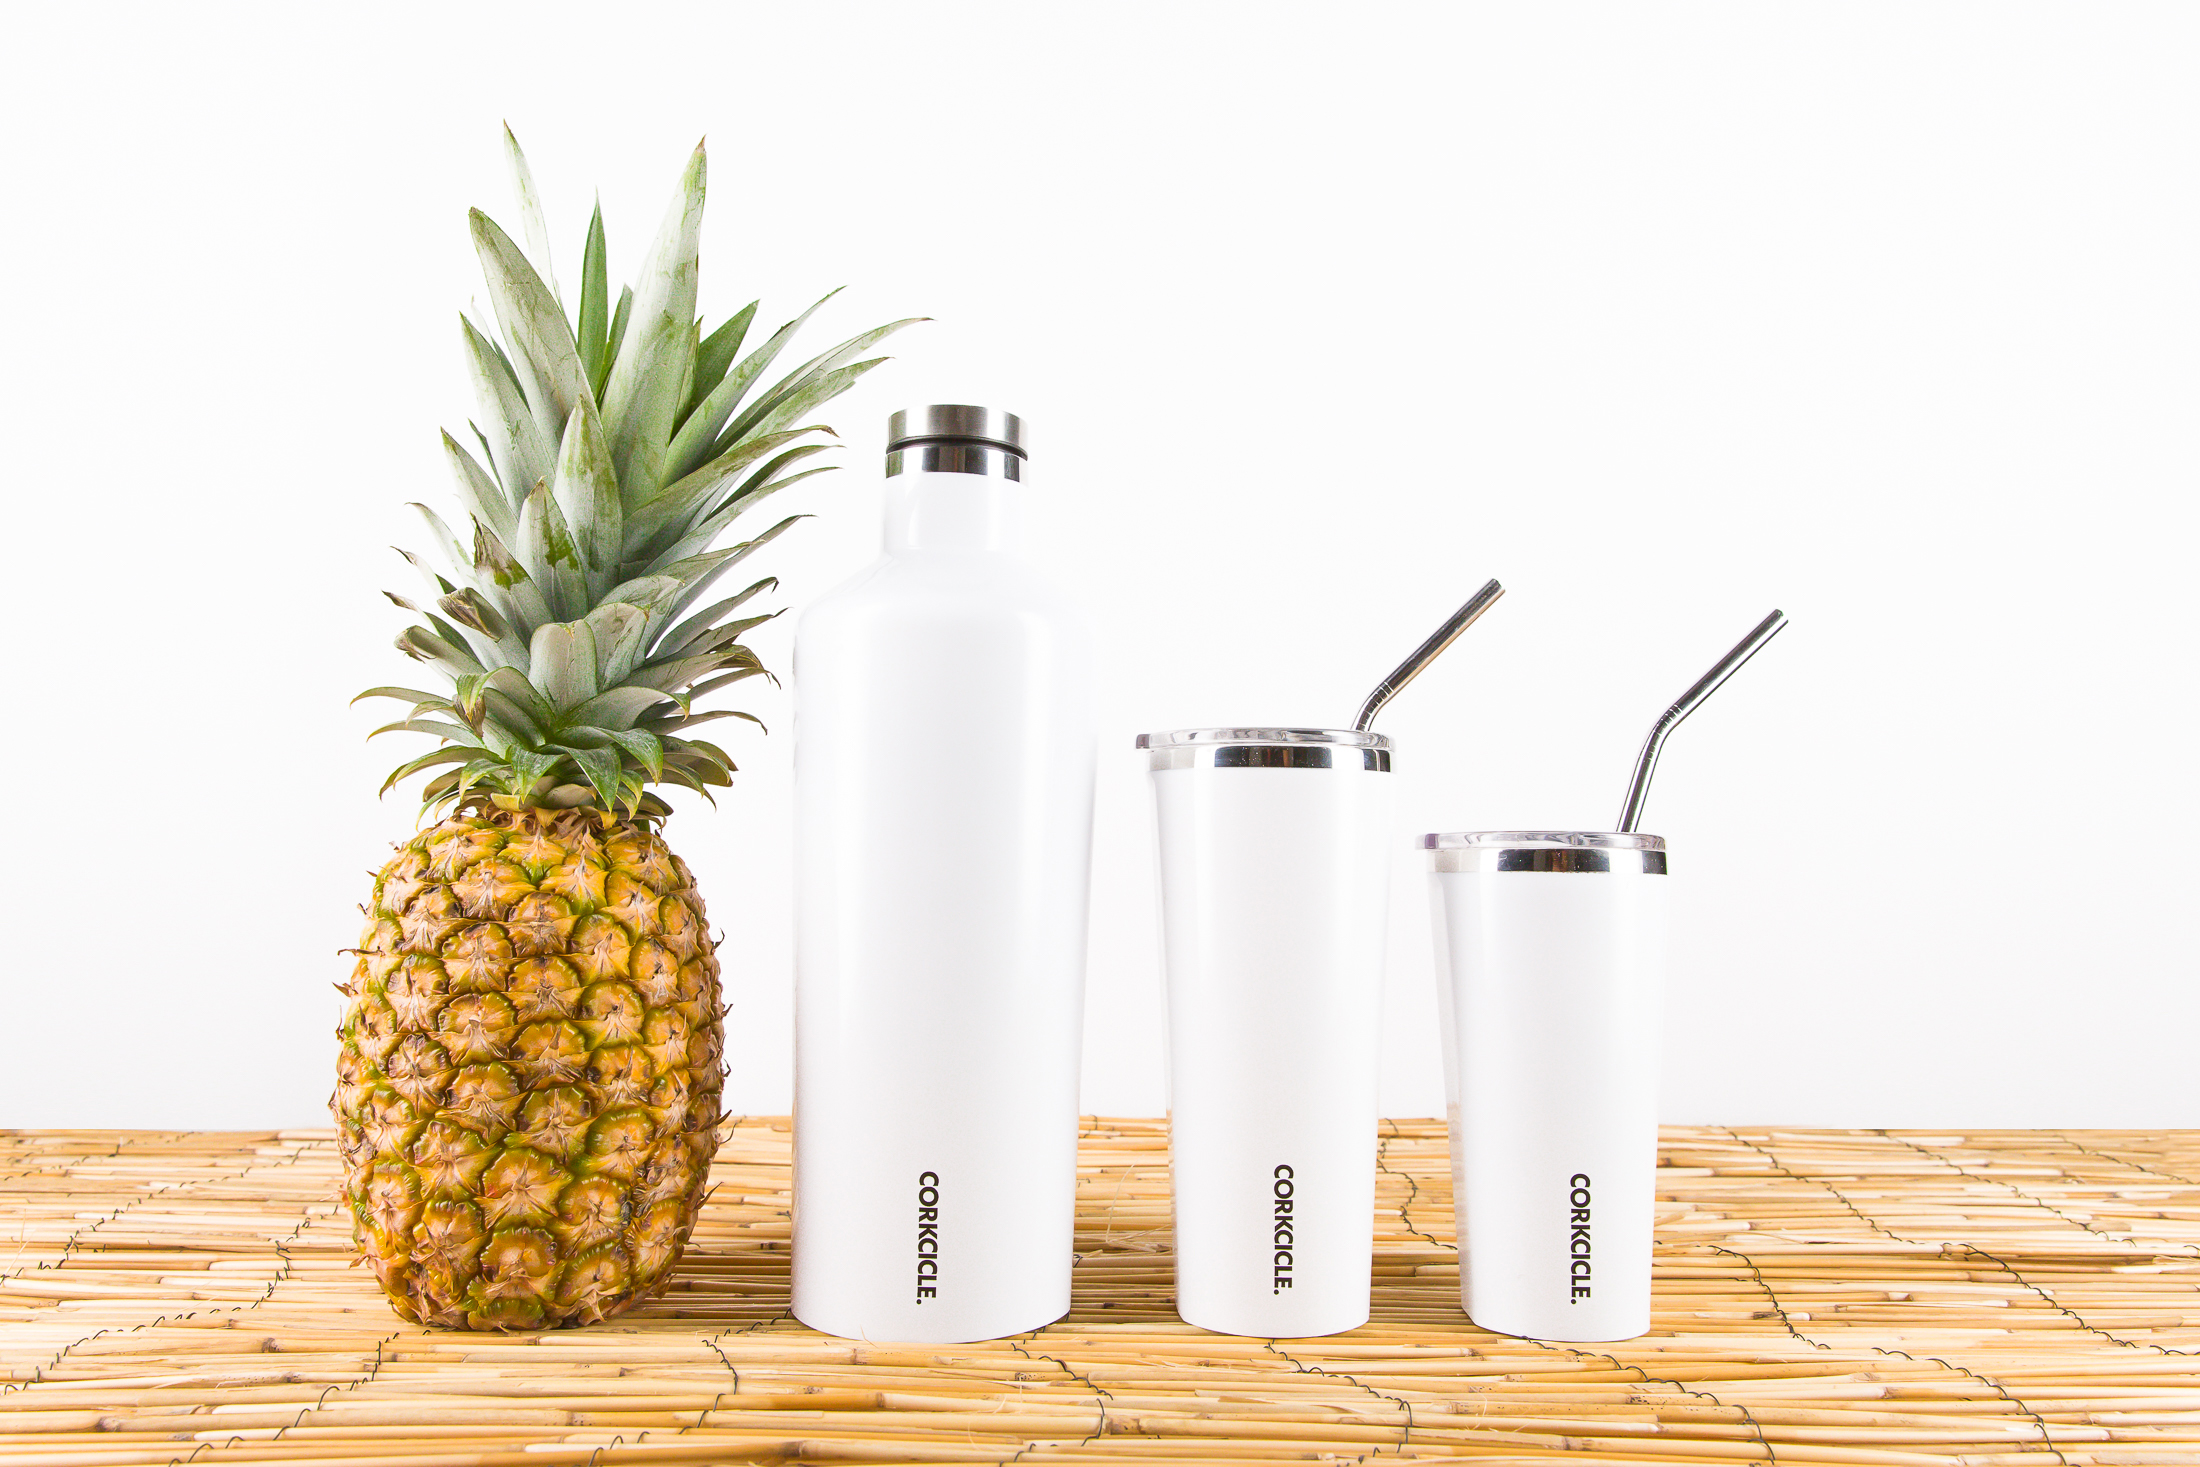 Corkcicle bottles on display at beyond the beach for sale in Lake Country.